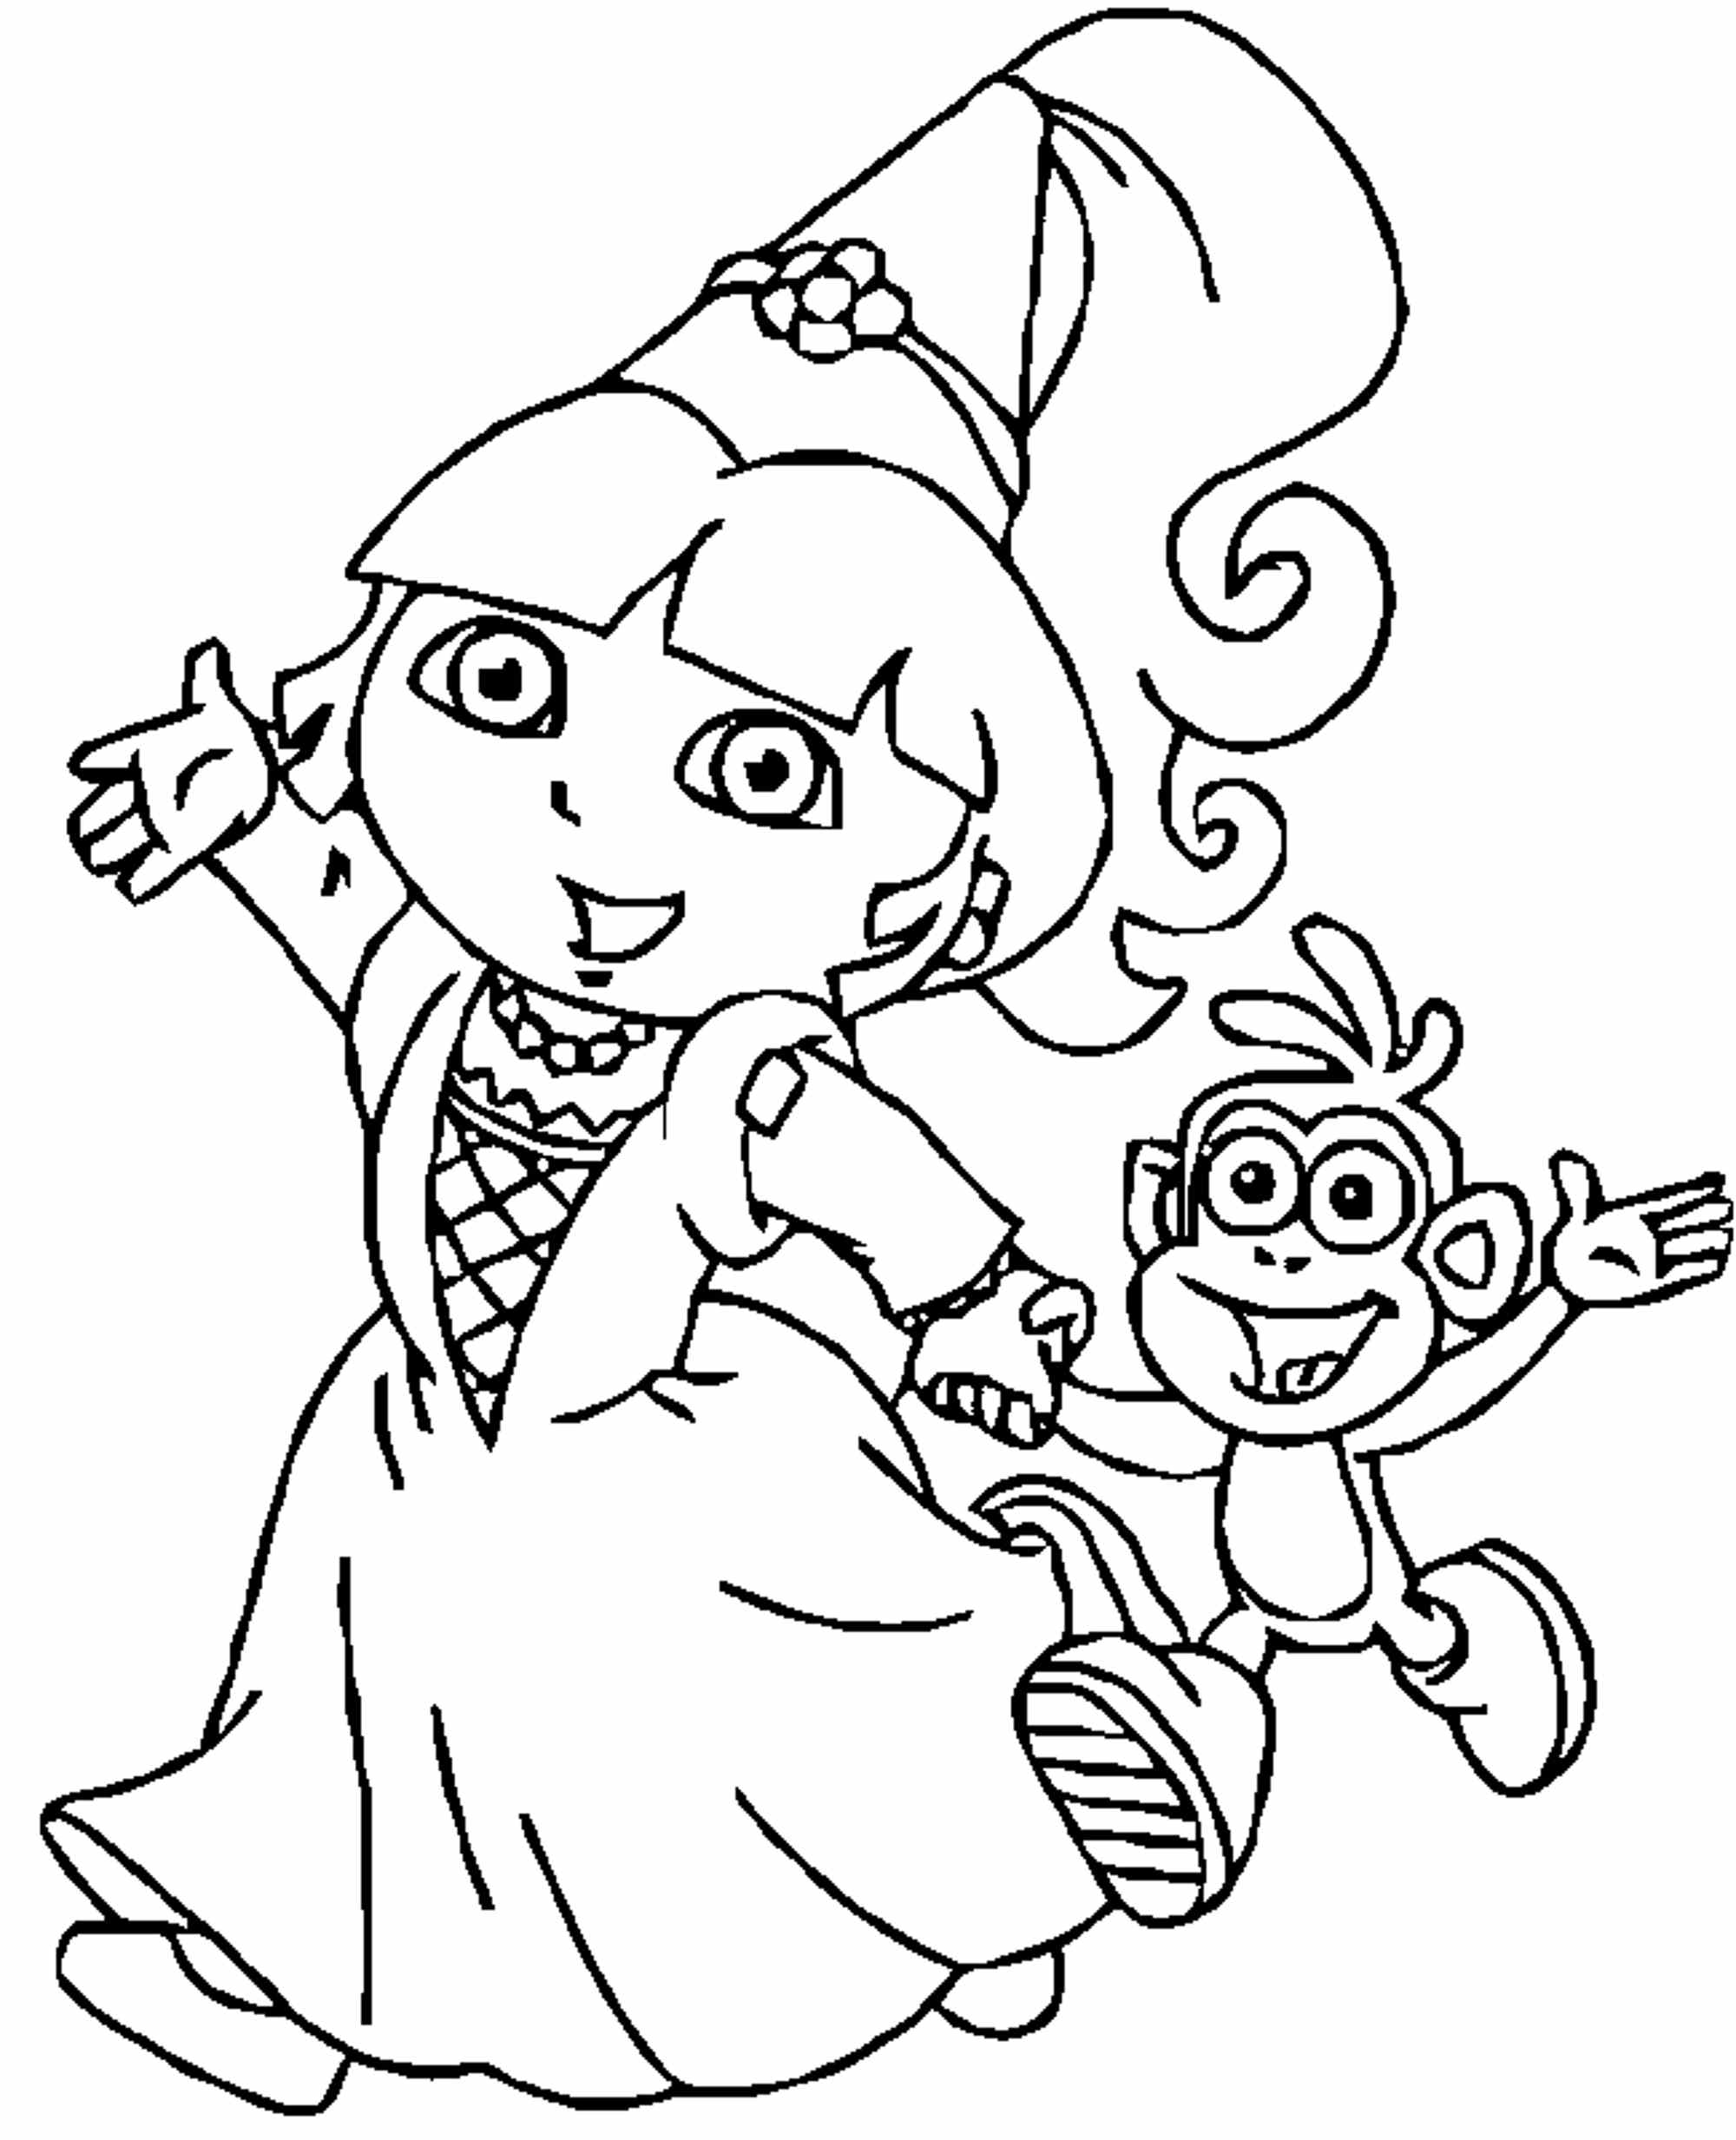 dora coloring sheets print download dora coloring pages to learn new things coloring sheets dora